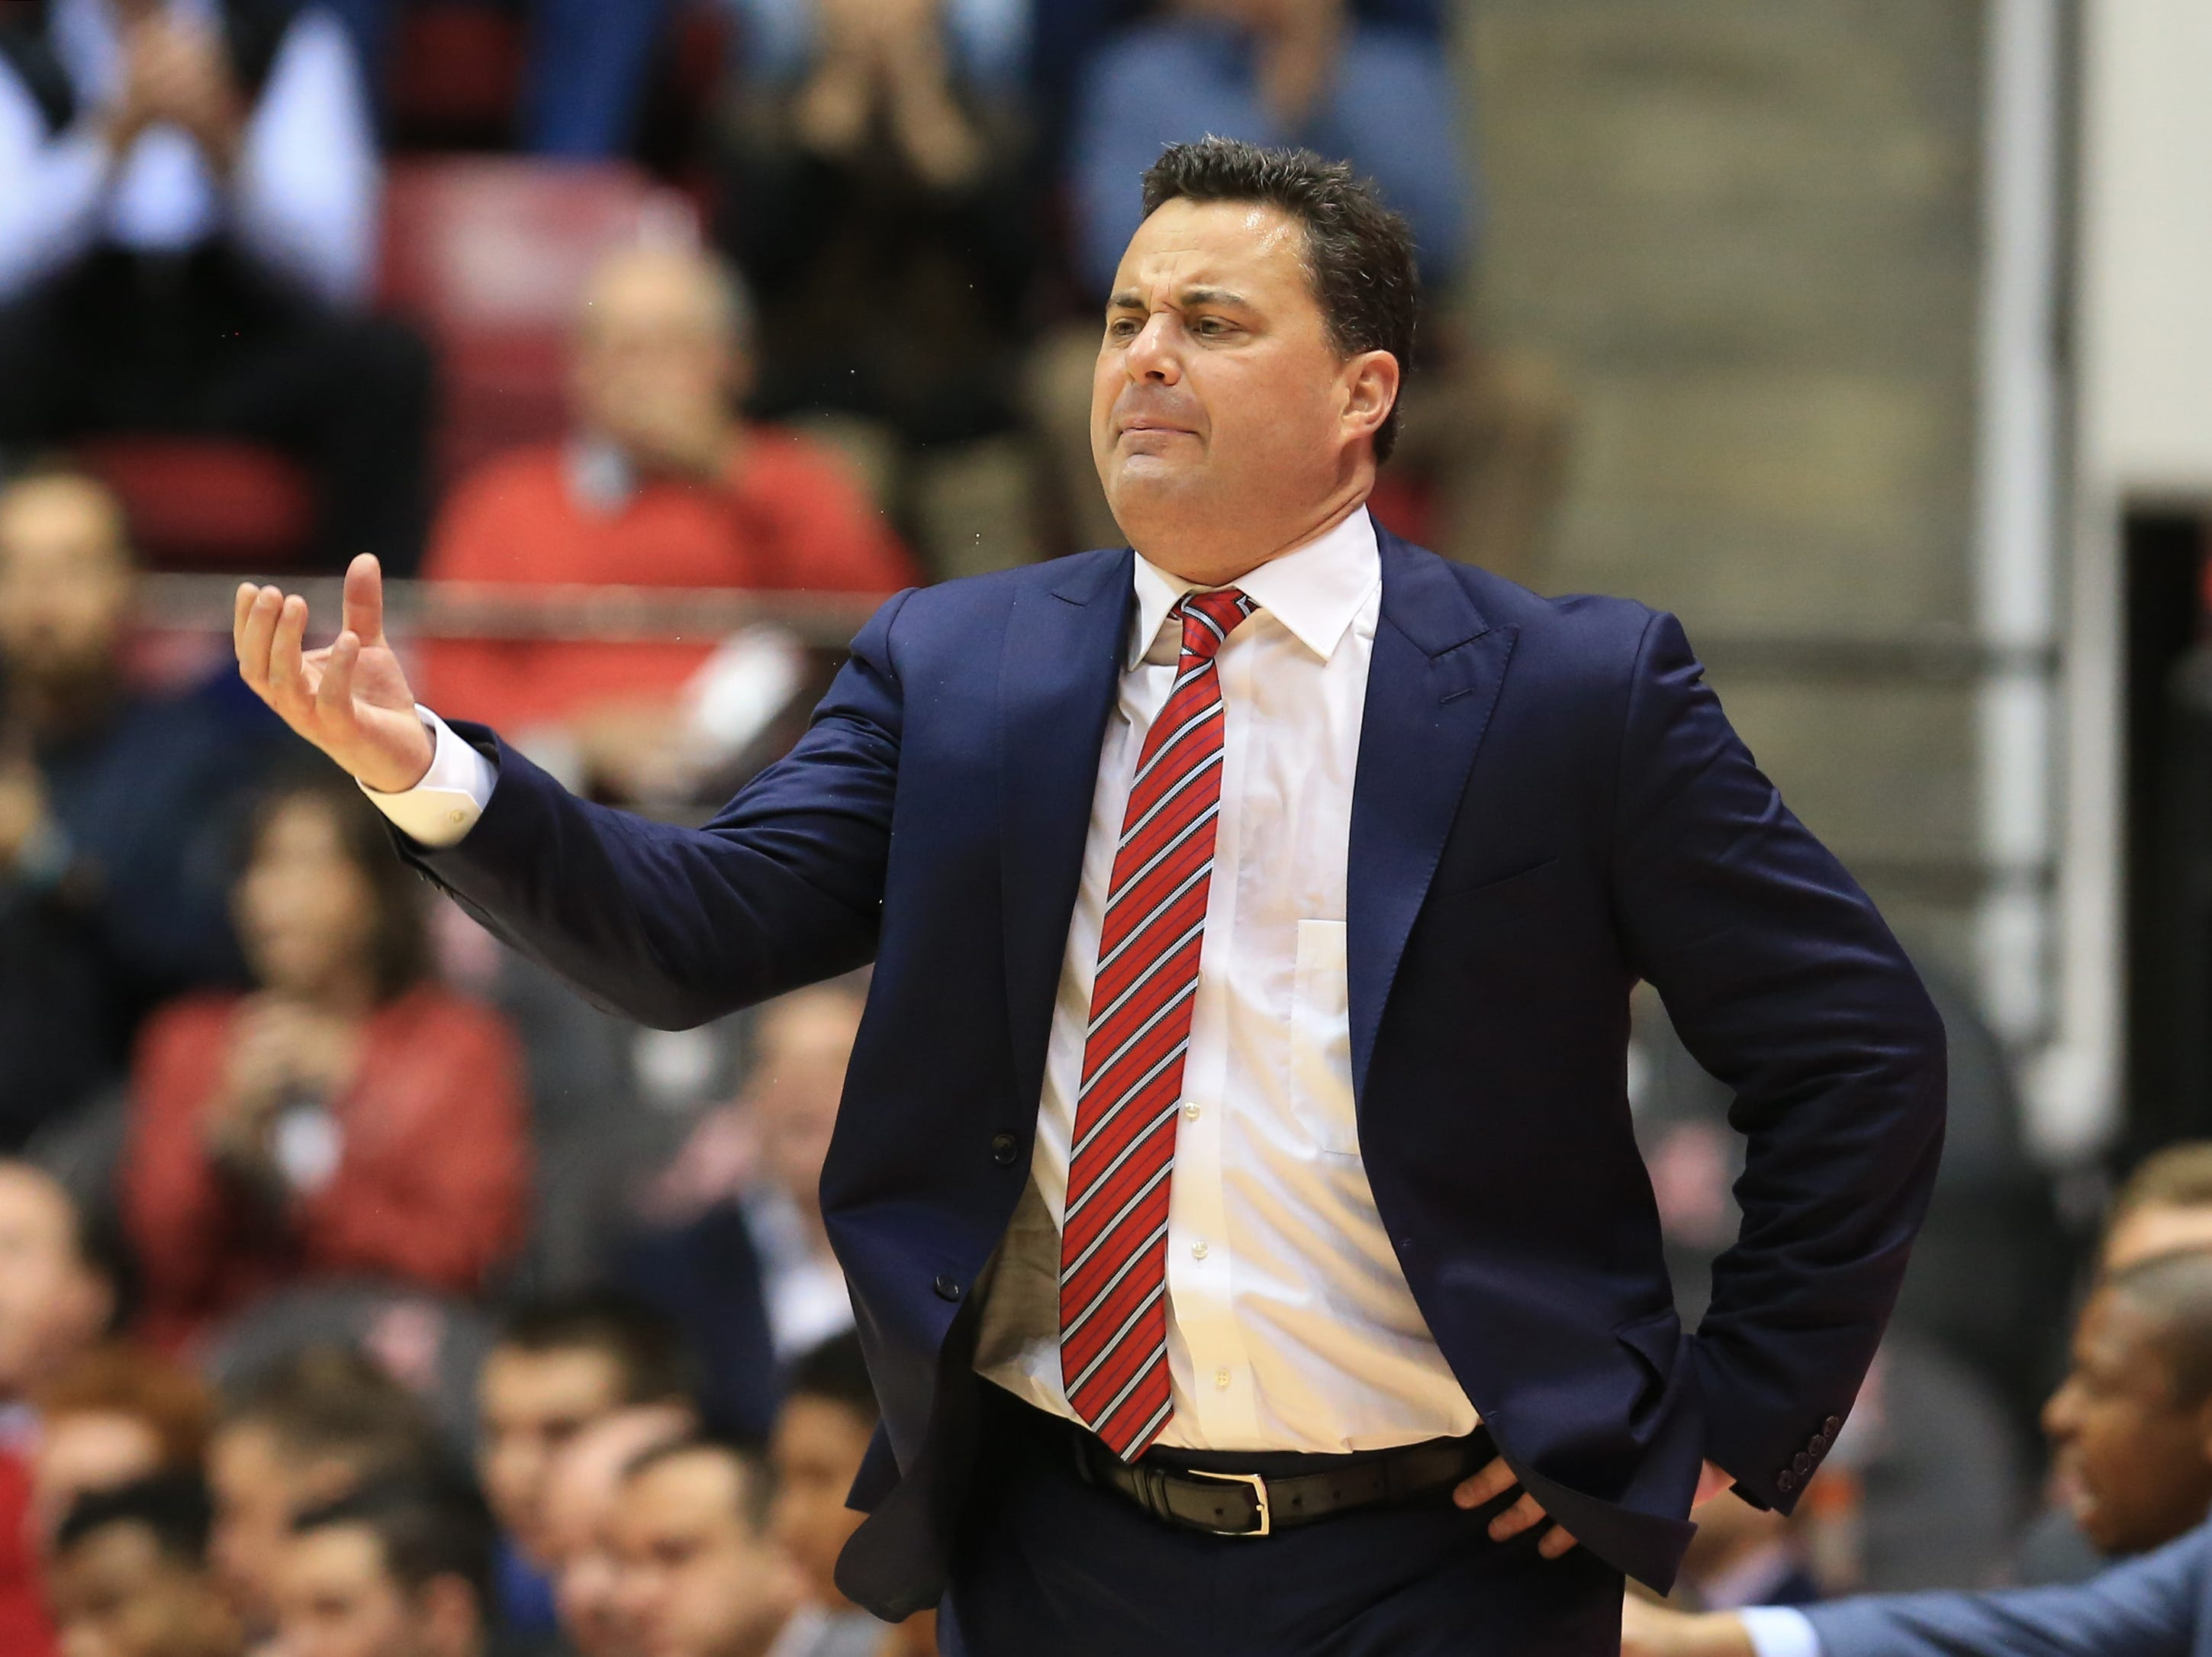 Dec 9, 2018; Tuscaloosa, AL, USA; Arizona Wildcats head coach Sean Miller reacts during the first half against the Alabama Crimson Tide at Coleman Coliseum. Mandatory Credit: Marvin Gentry-USA TODAY Sports